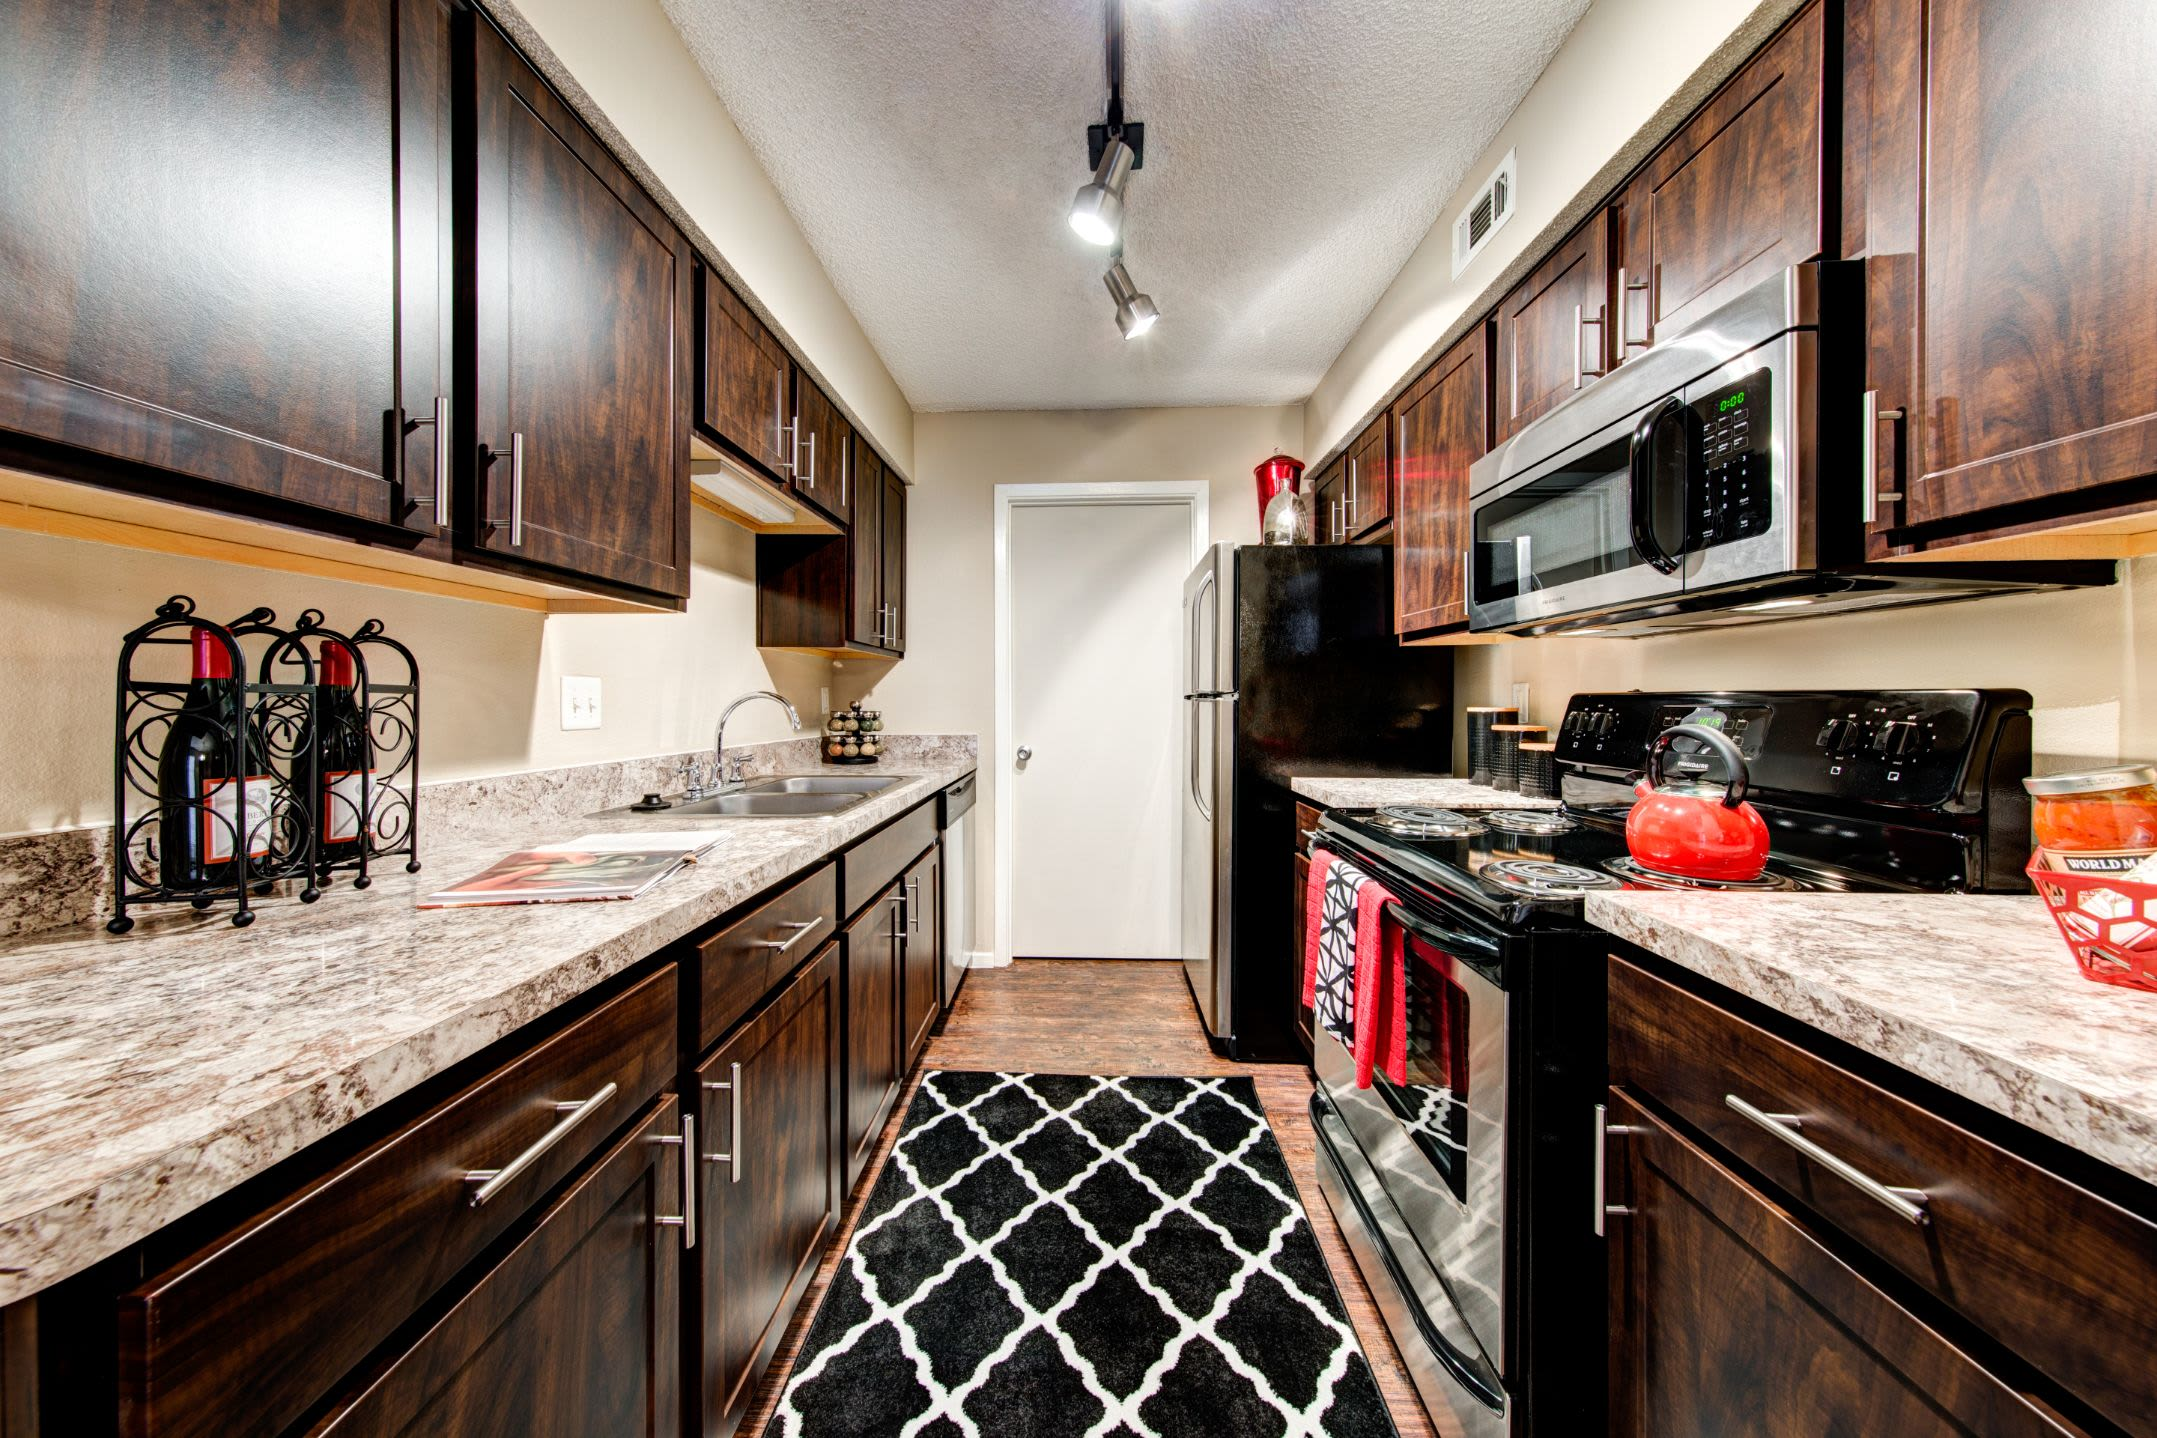 Modern kitchen with dark colored cabinets at The Park at Flower Mound in Flower Mound, Texas